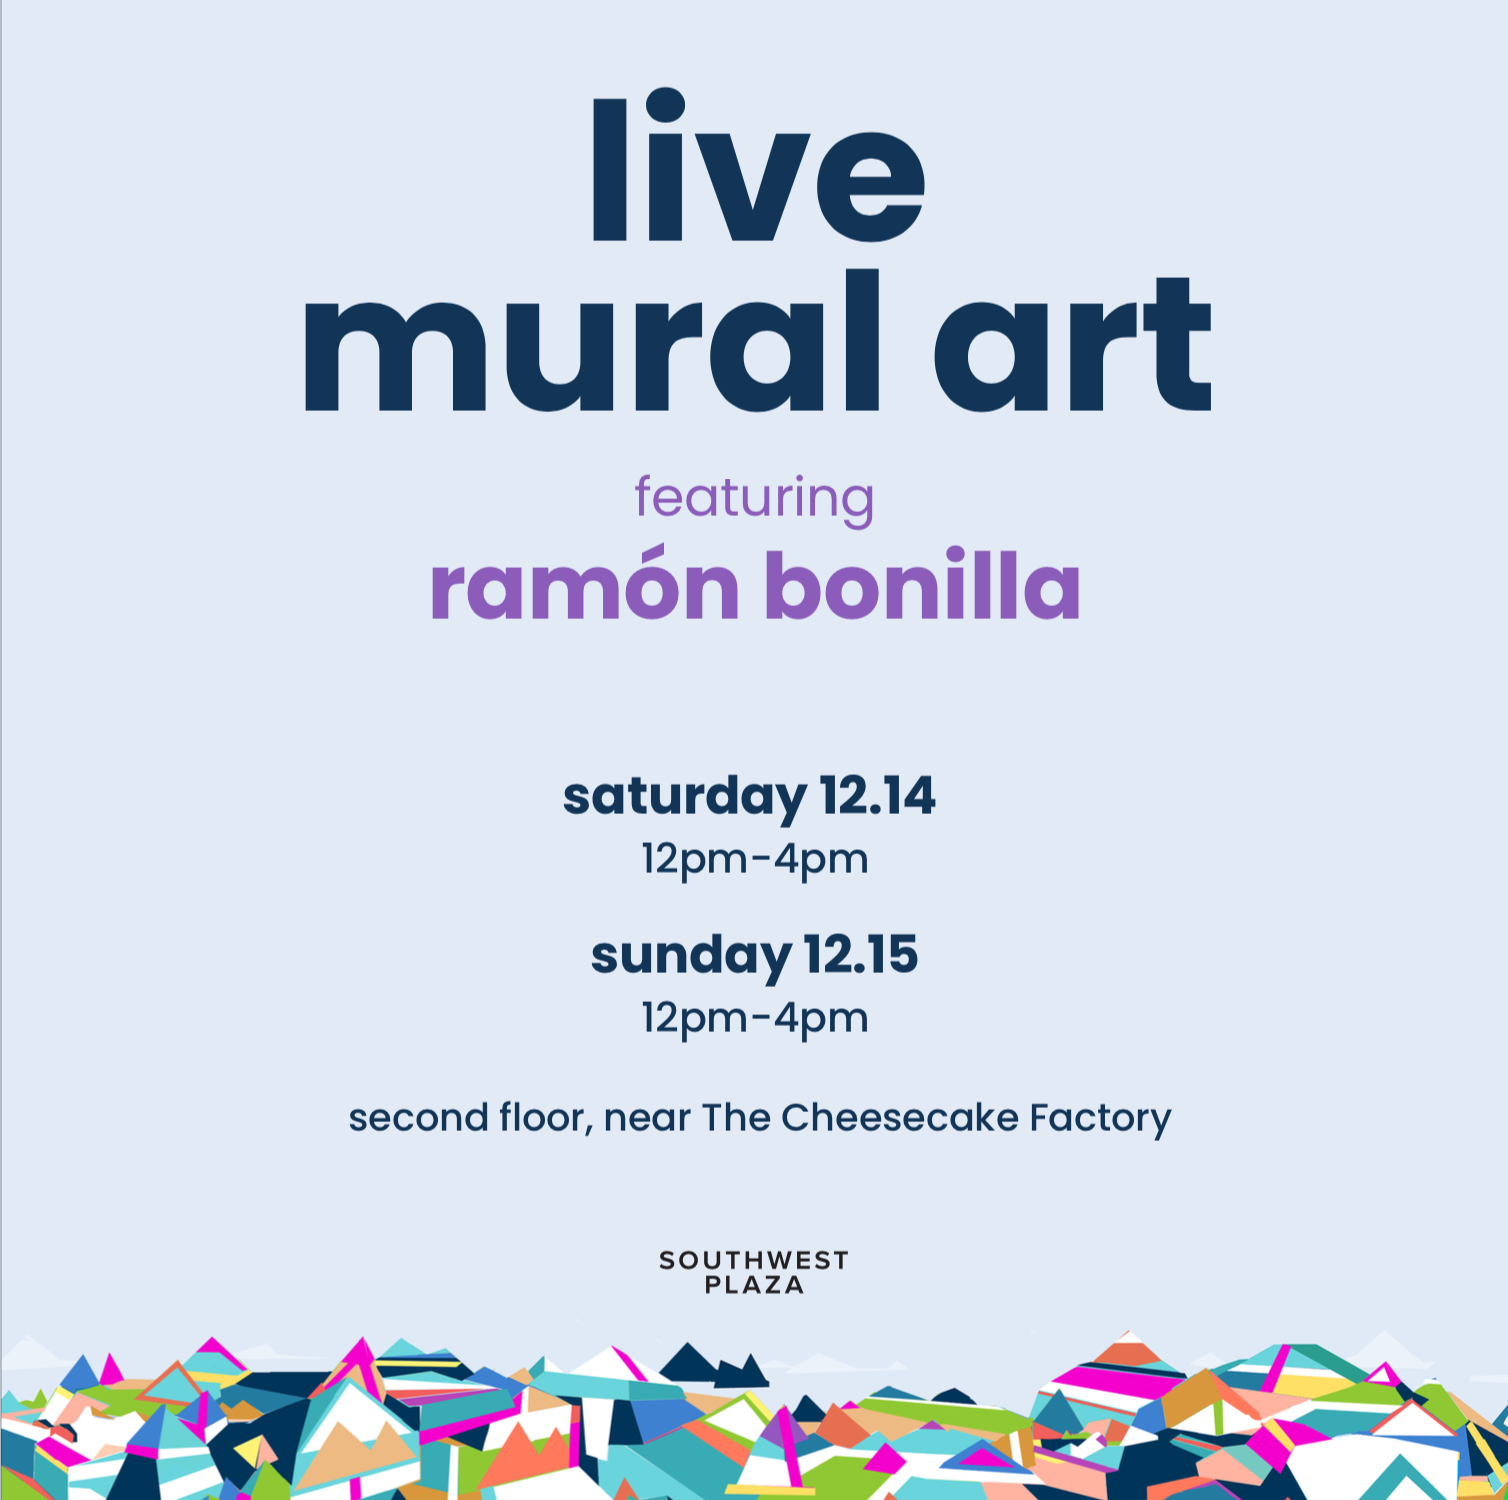 live mural art poster on light blue background with geometric  multi-colored mountain art at bottom